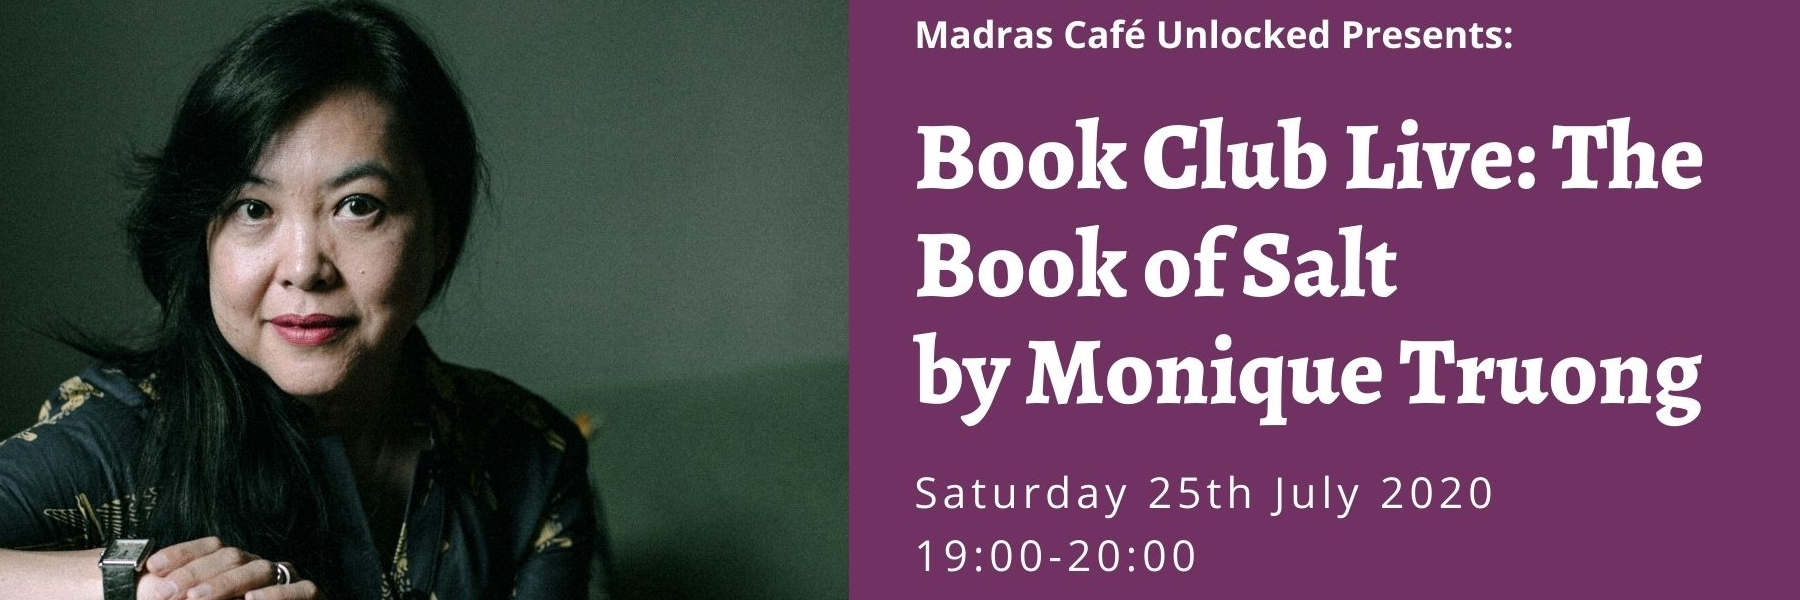 Madras Cafe Unlocked 2020: Book Club Live Online: The Book of Salt by Monique Truong